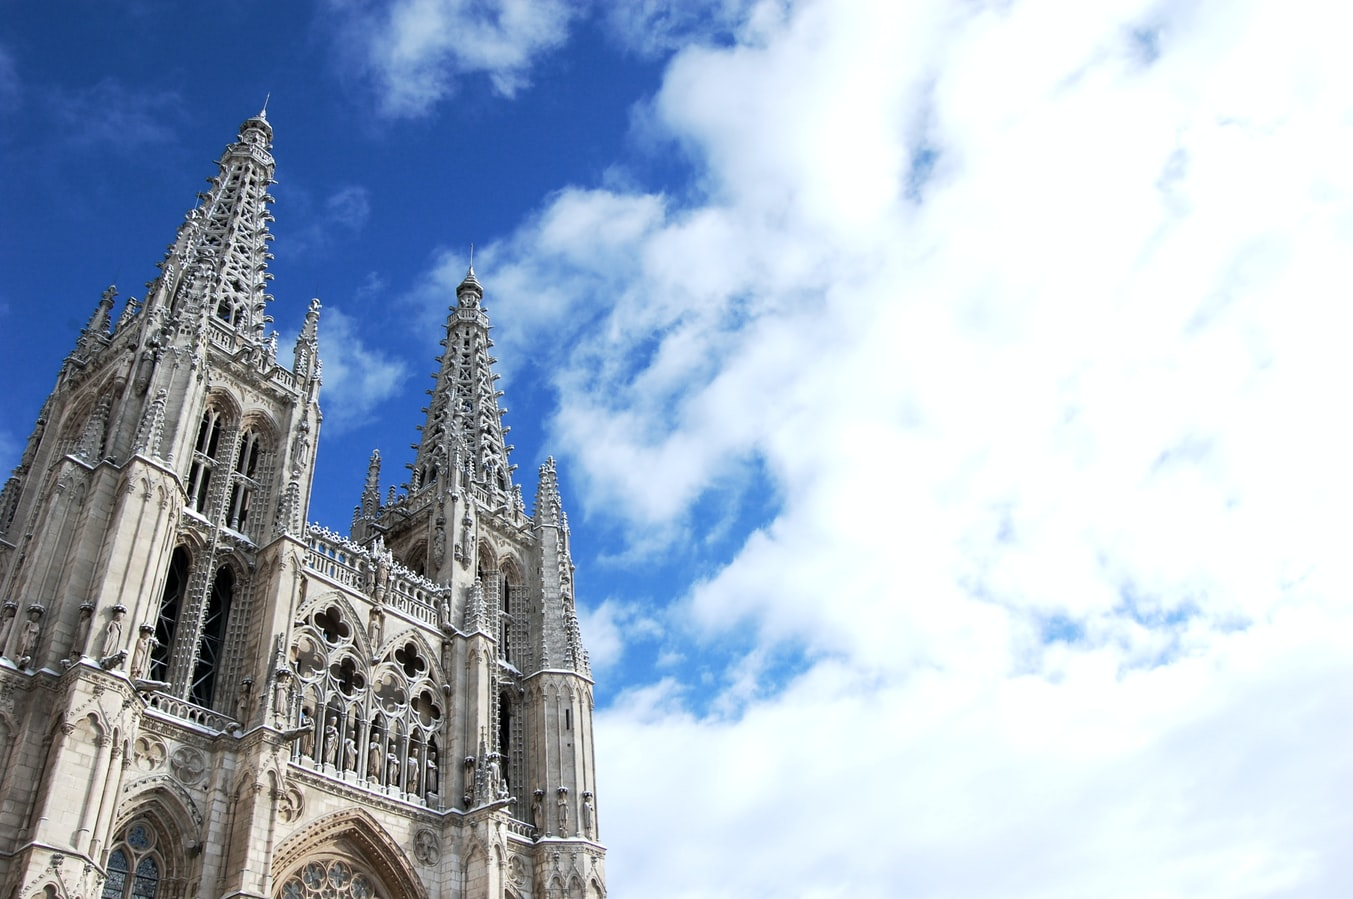 a cathedral in Burgos, Spain